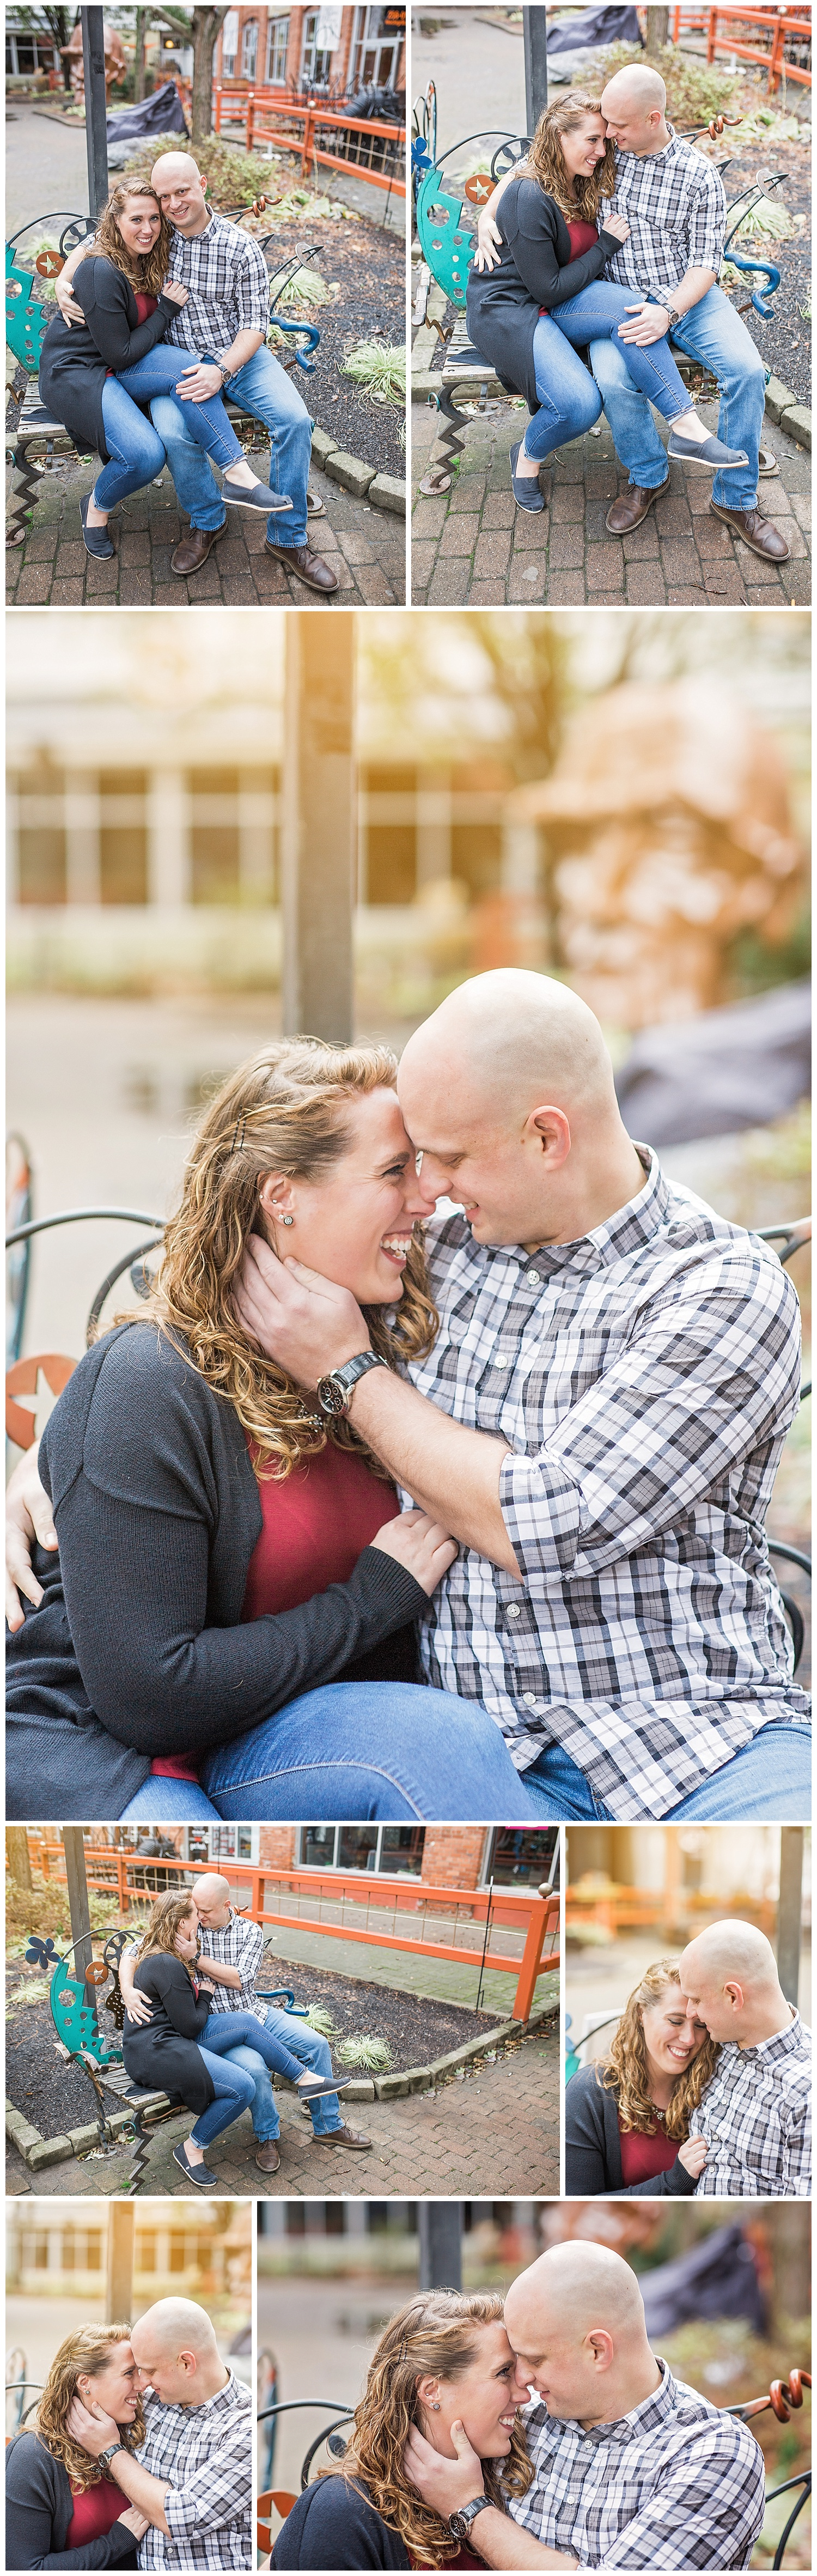 Couples session - village gate, Rochester - Lass & Beau -13_Buffalo wedding photography.jpg